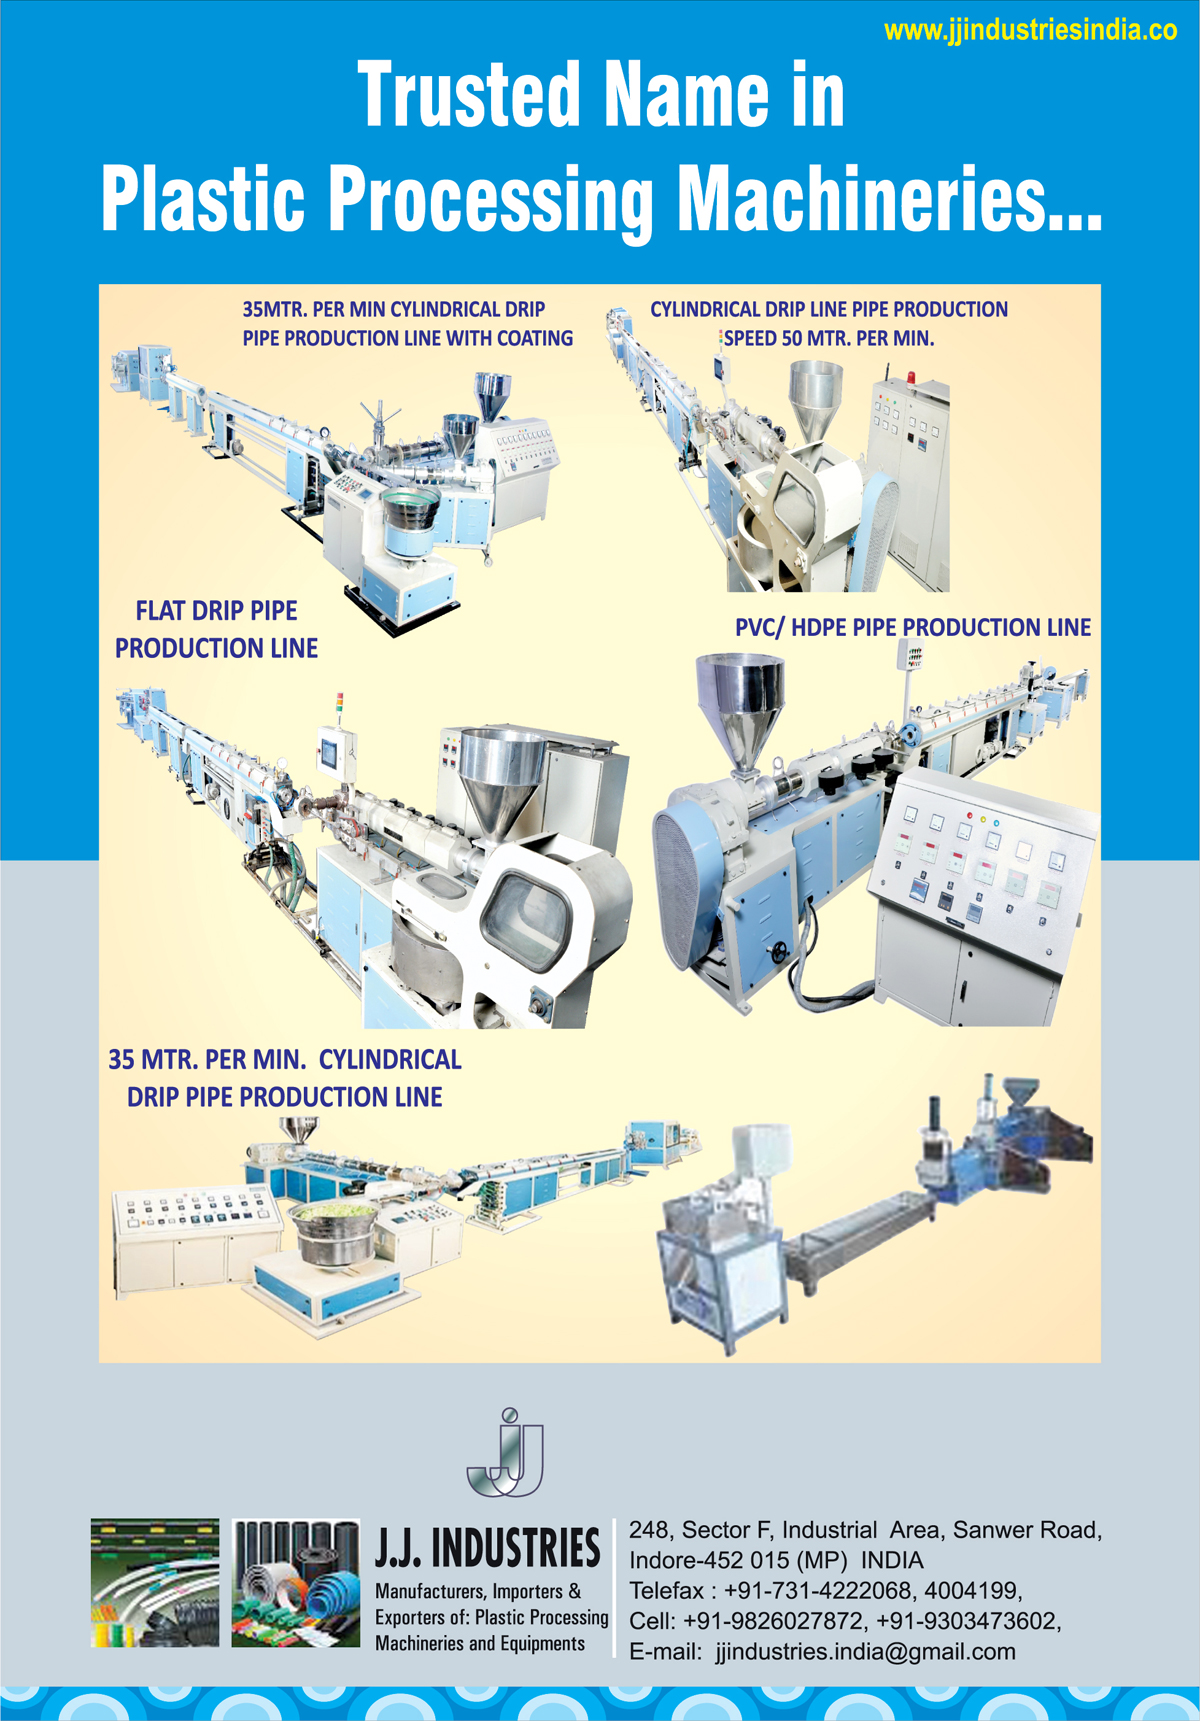 Plastic Processing Machines, Pipe Production Line With Coatings, HDPE Pipe Production Lines, PVC Pipe Production Lines, Cylindrical Drip Pipe Production Lines, Flat Drip Pipe Production Lines, Cylindrical Drip Line Pipe Productions